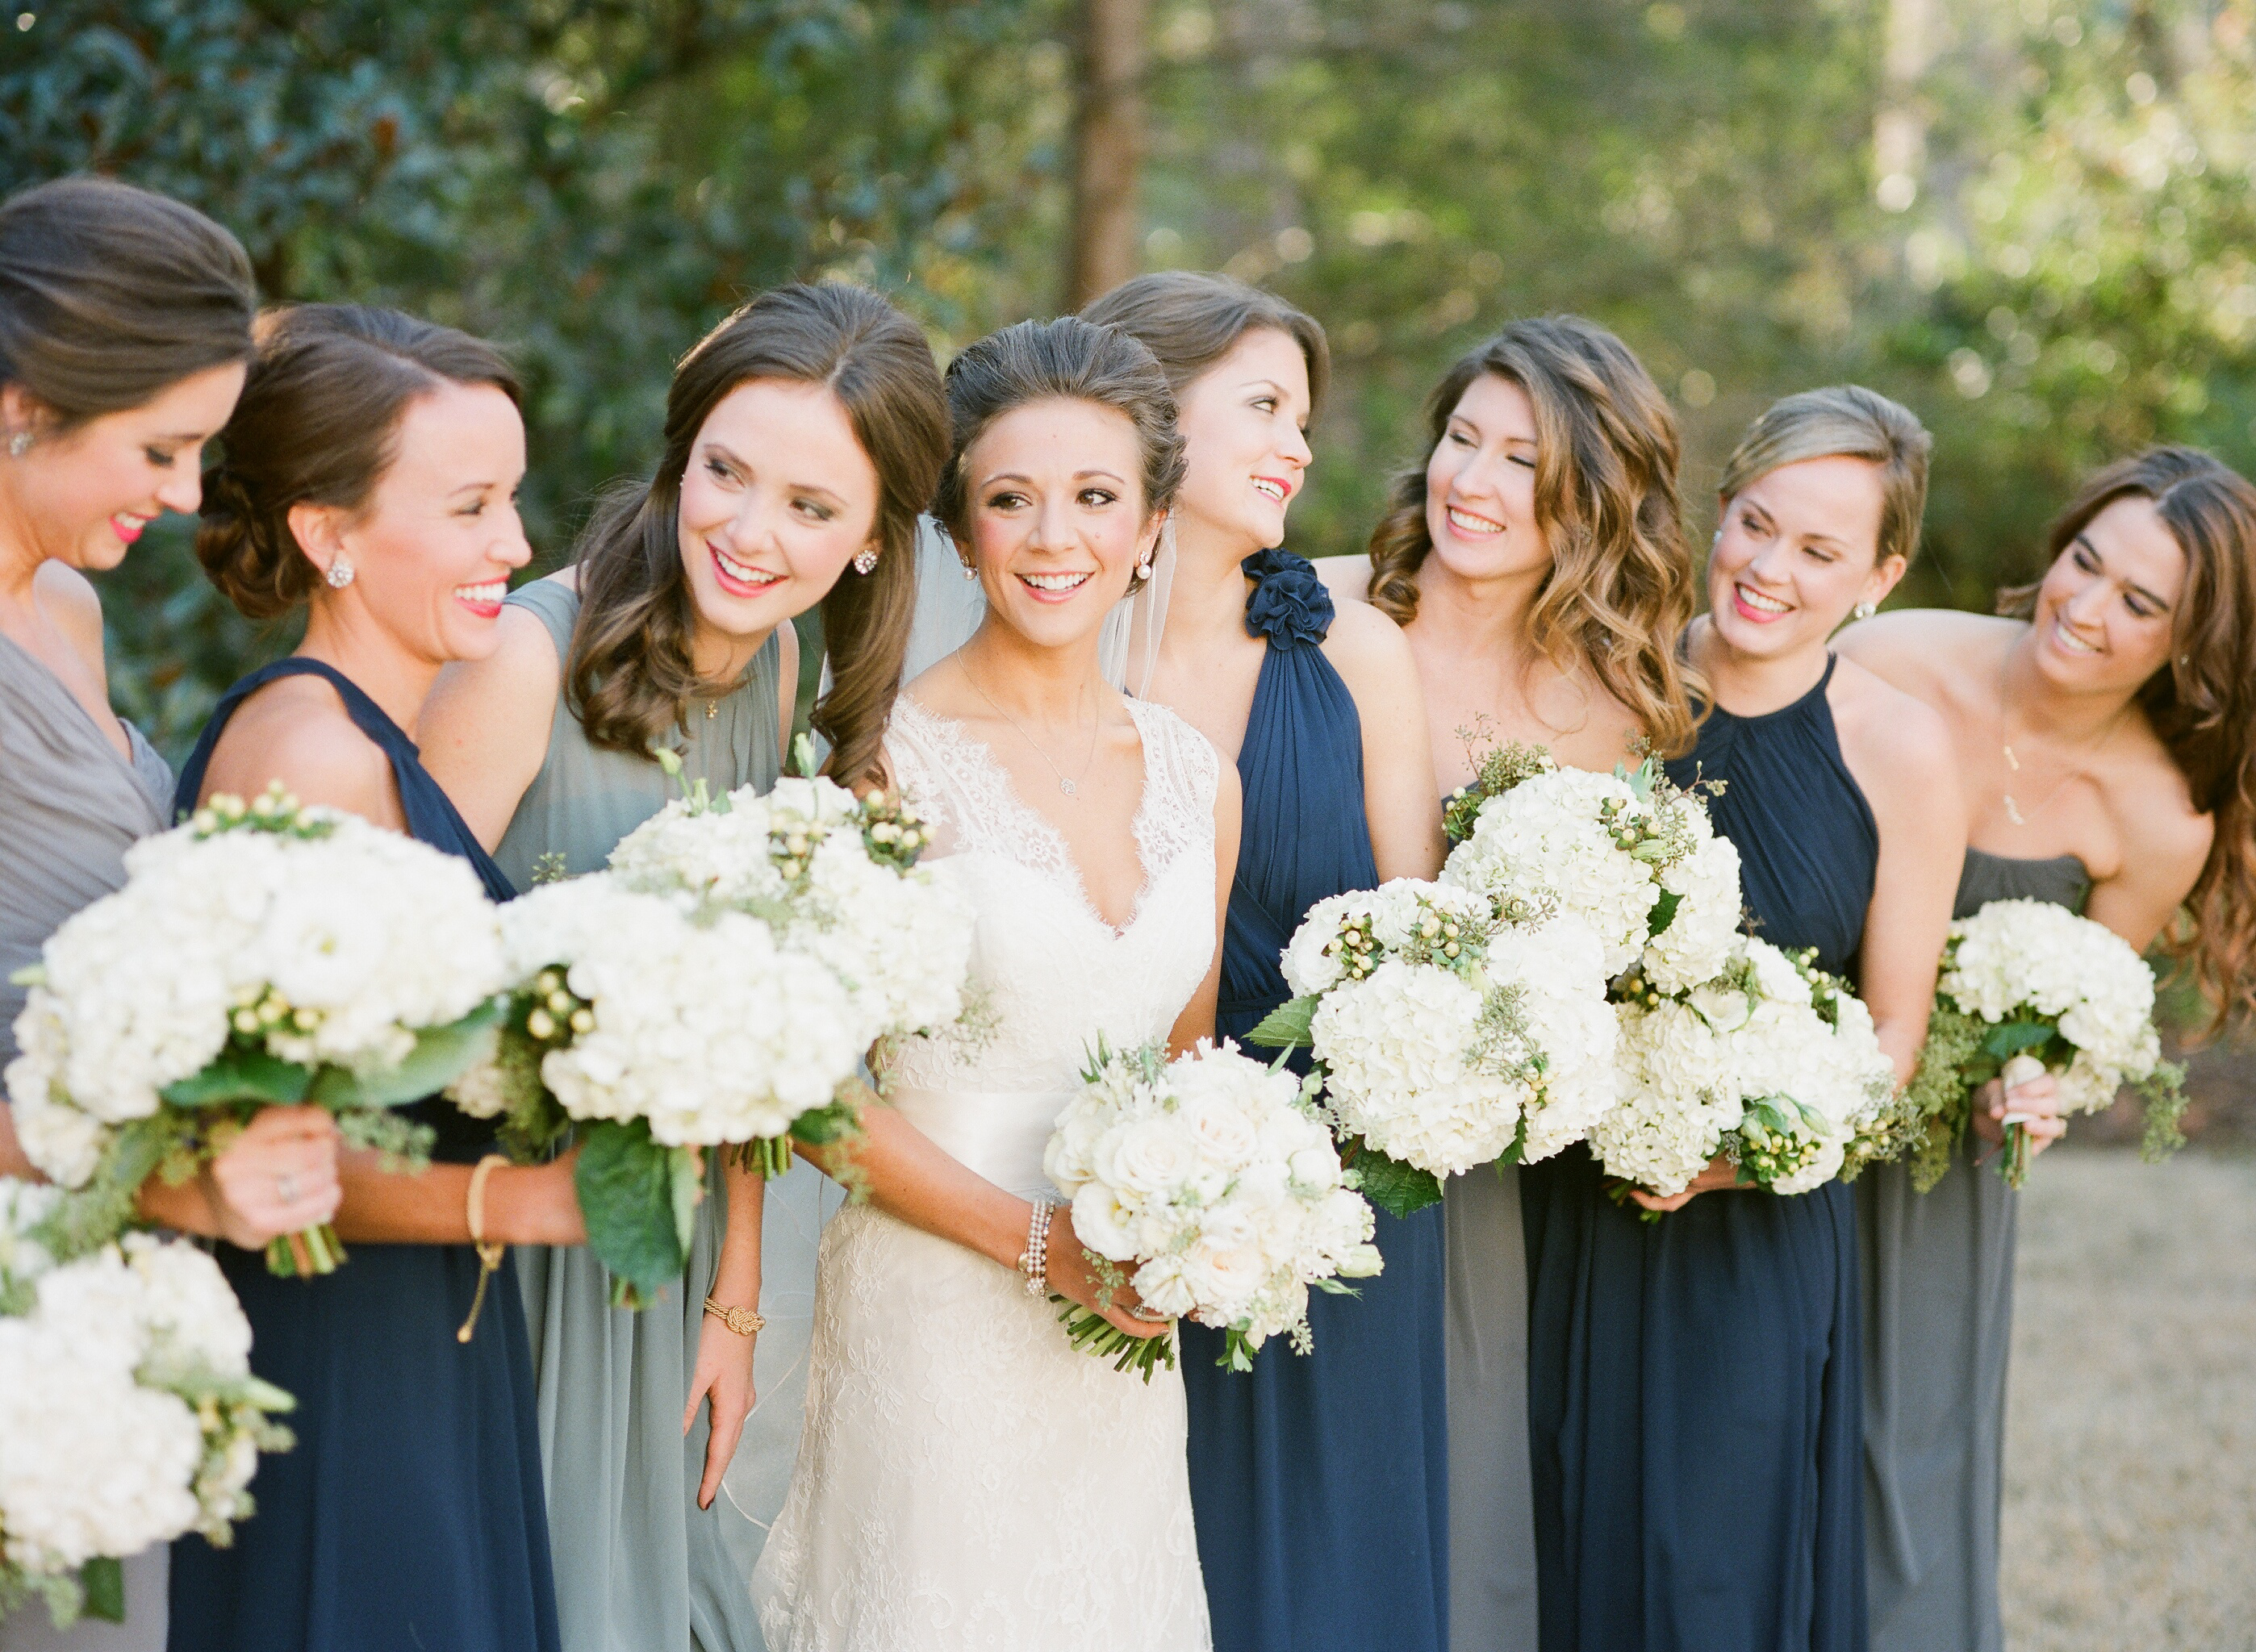 Classic southern winter wedding elizabeth anne designs the classic southern winter wedding elizabeth anne designs the wedding blog ombrellifo Image collections